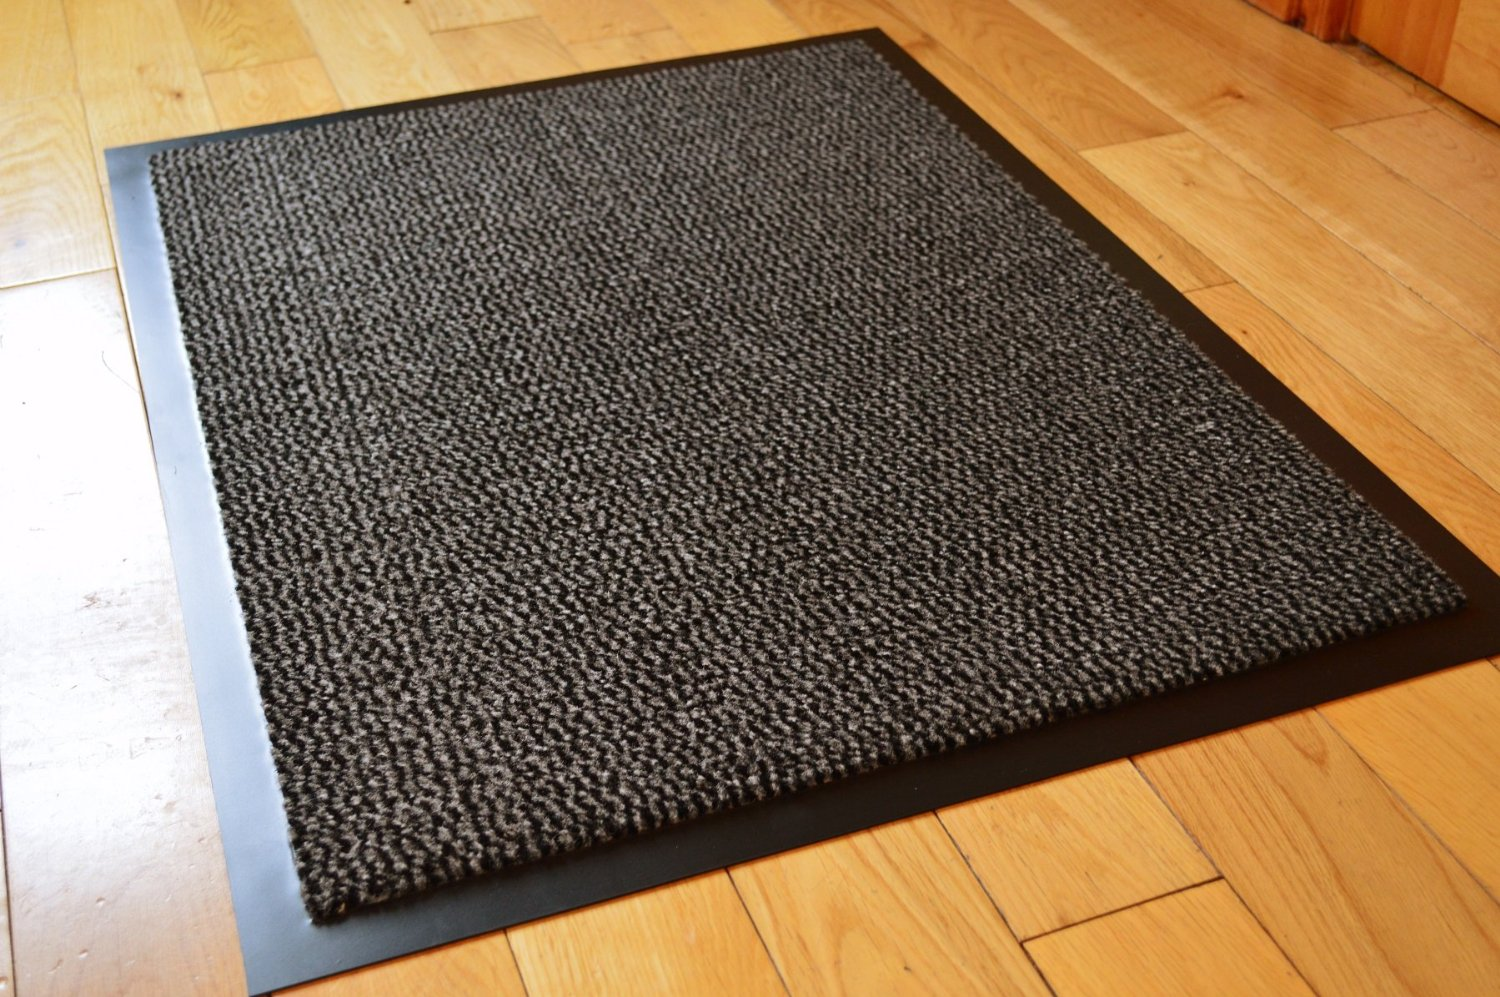 Foam Kitchen Floor Mats Long Bath Mat Runner